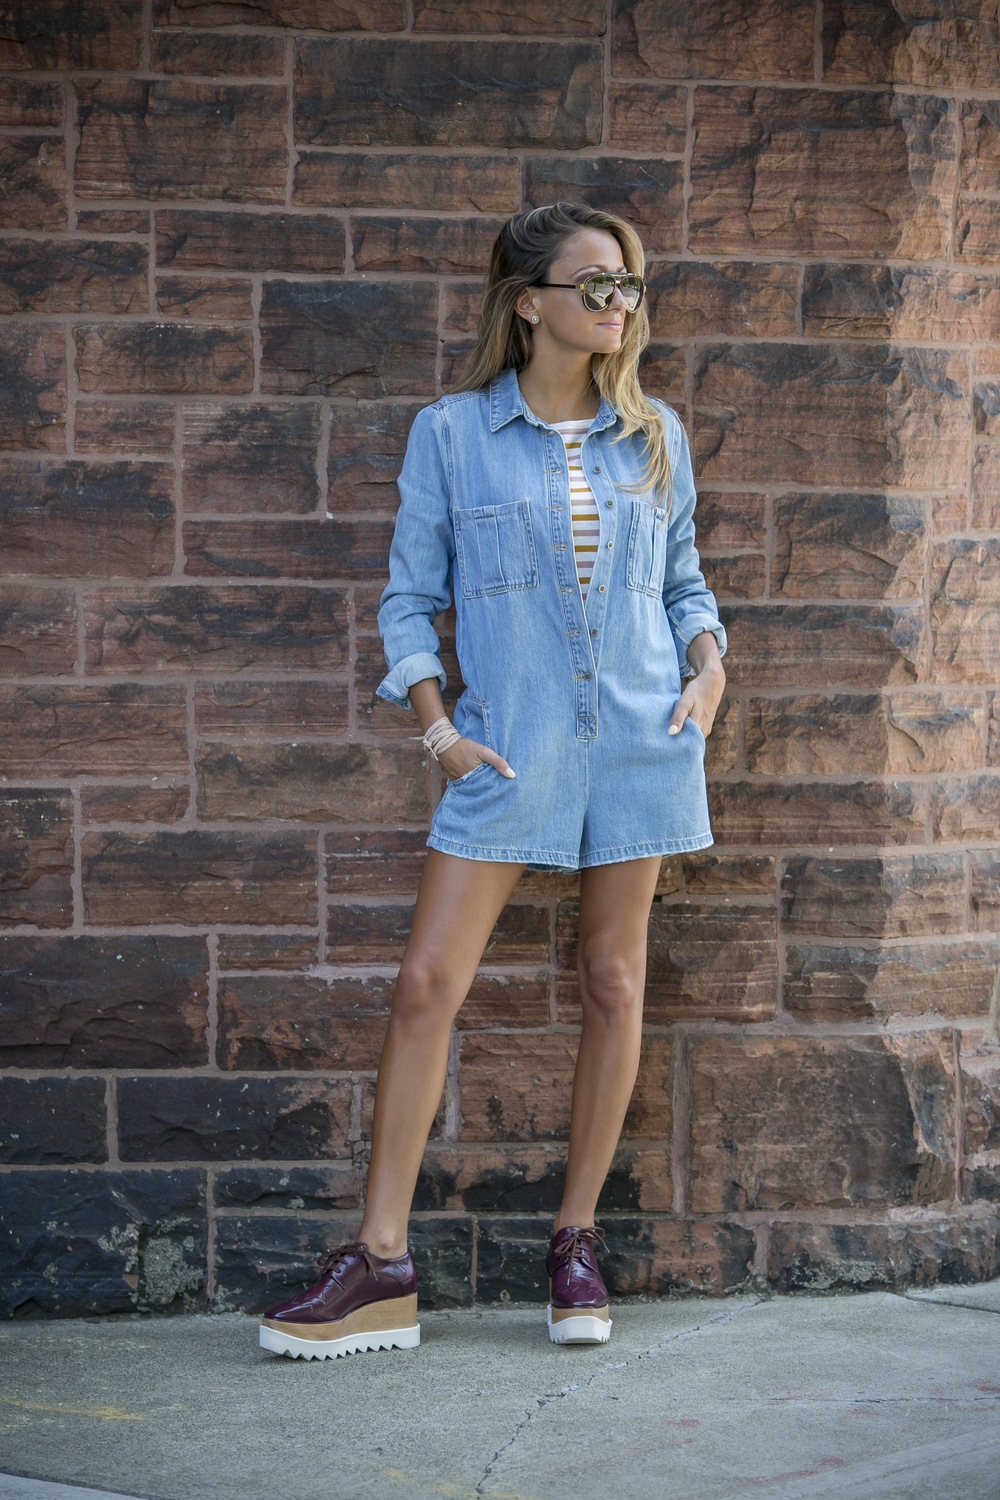 denim romper and stella mccartney platforms